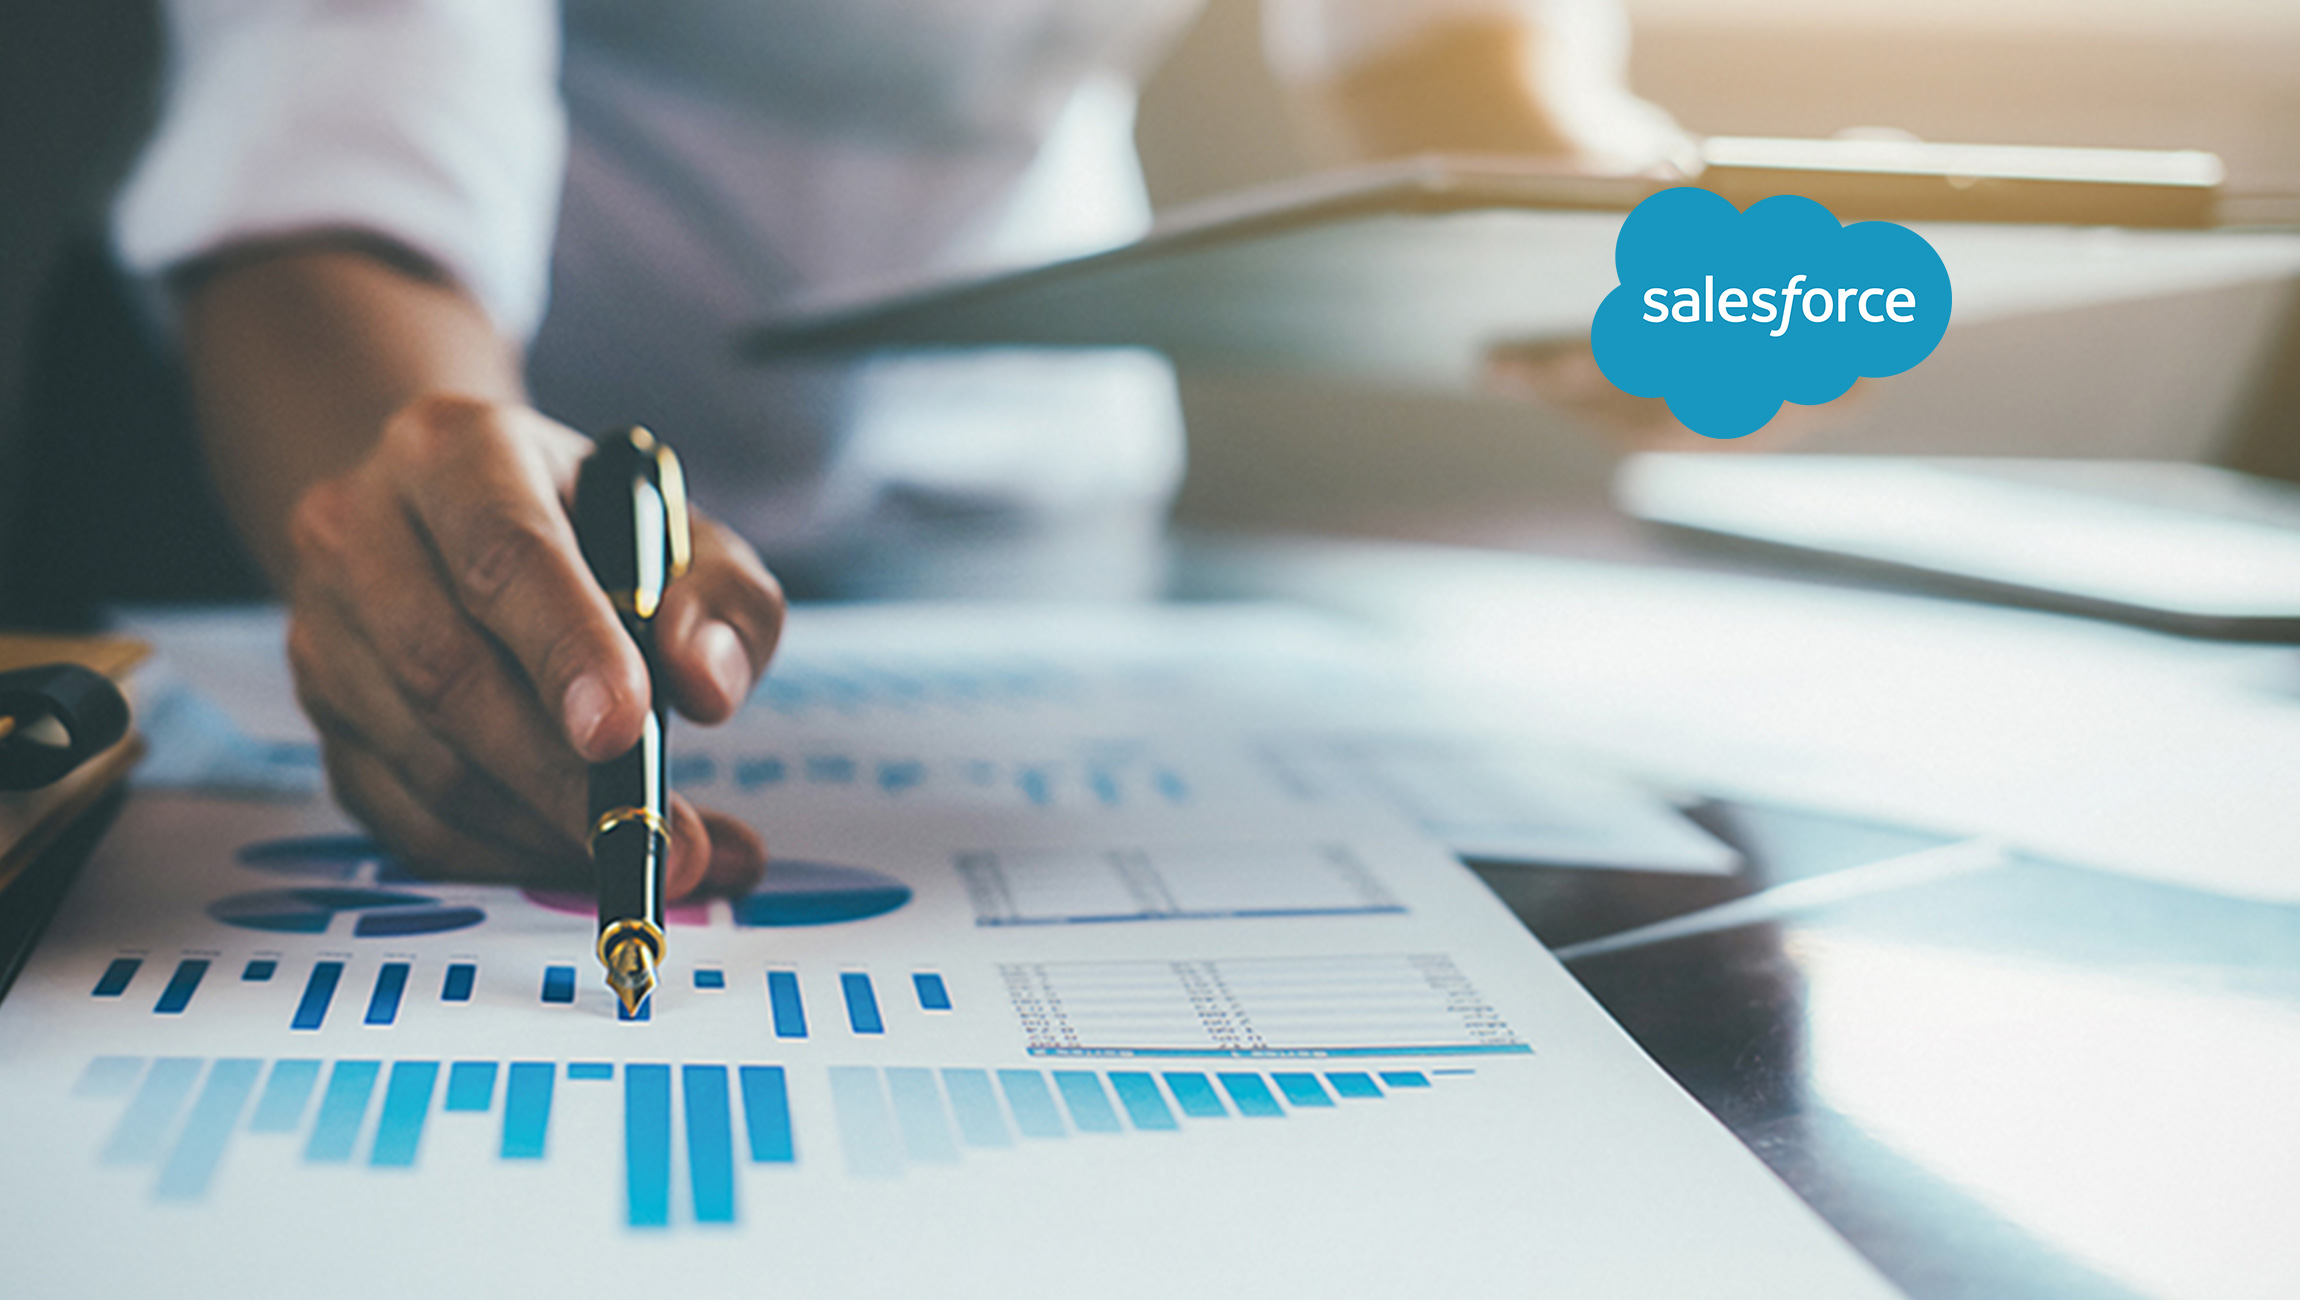 Salesforce Named #1 CRM Provider for Sixth Consecutive Year